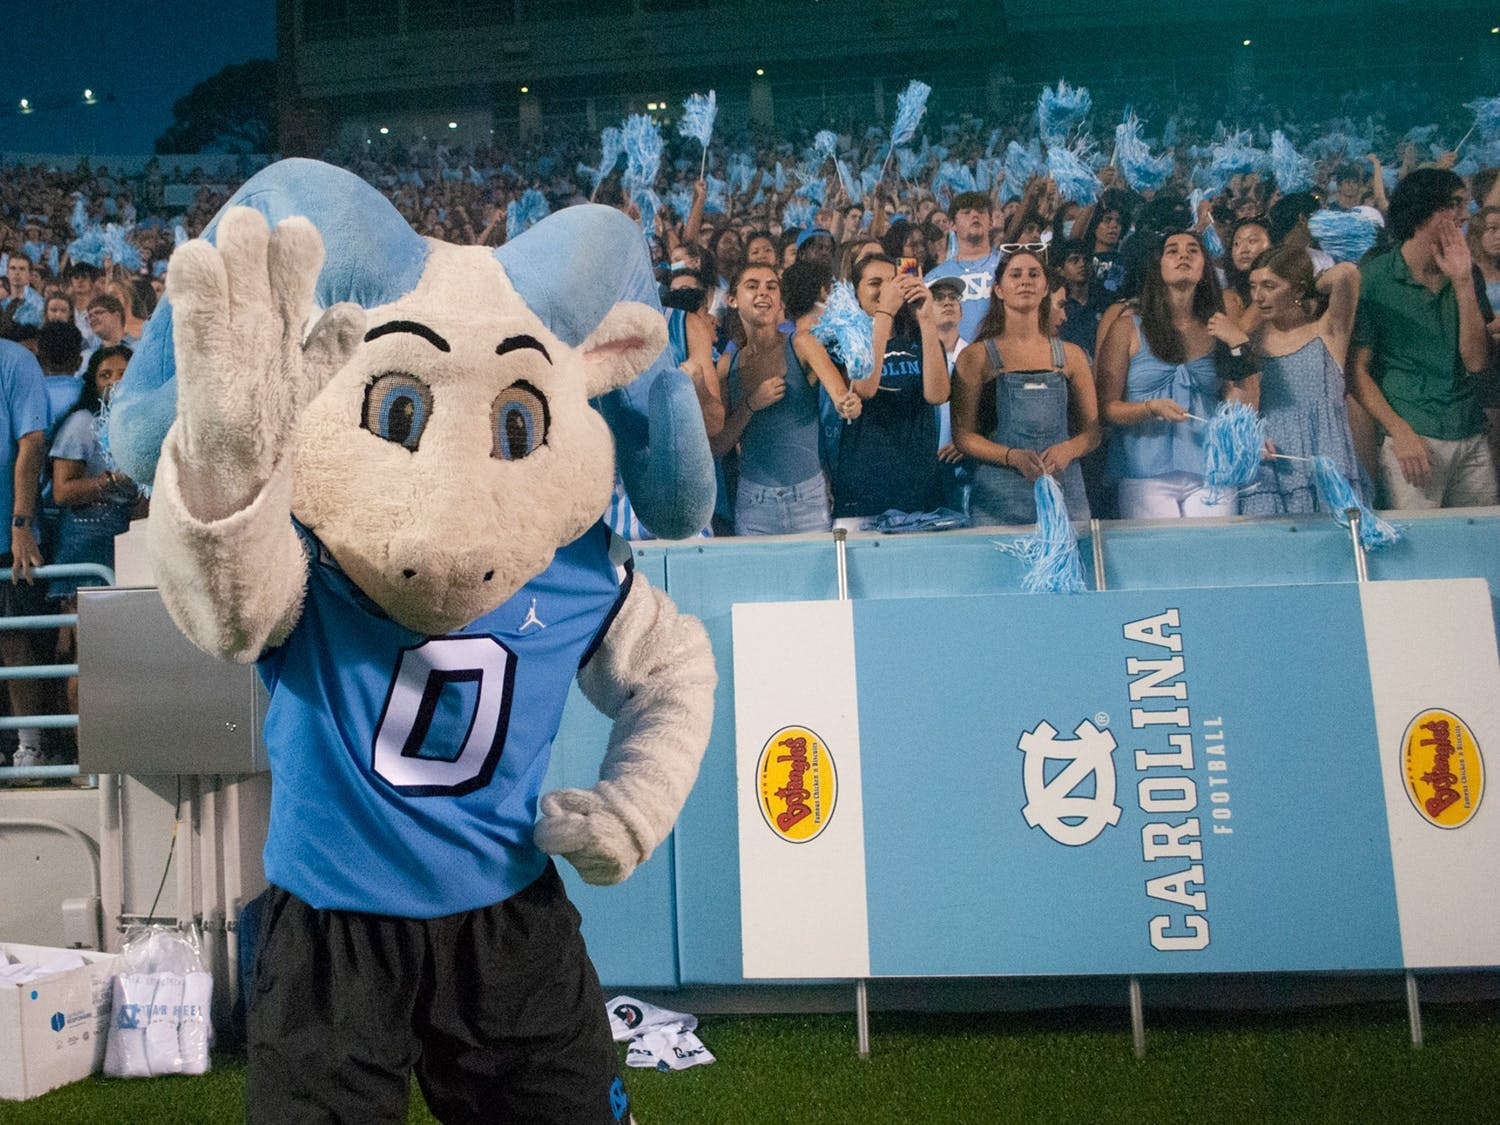 Ramses gets fans excited for UNC Football's second home game of the season, which was against the University of Virginia. UNC defeated the Cavaliers 59-39, their second win of the season.